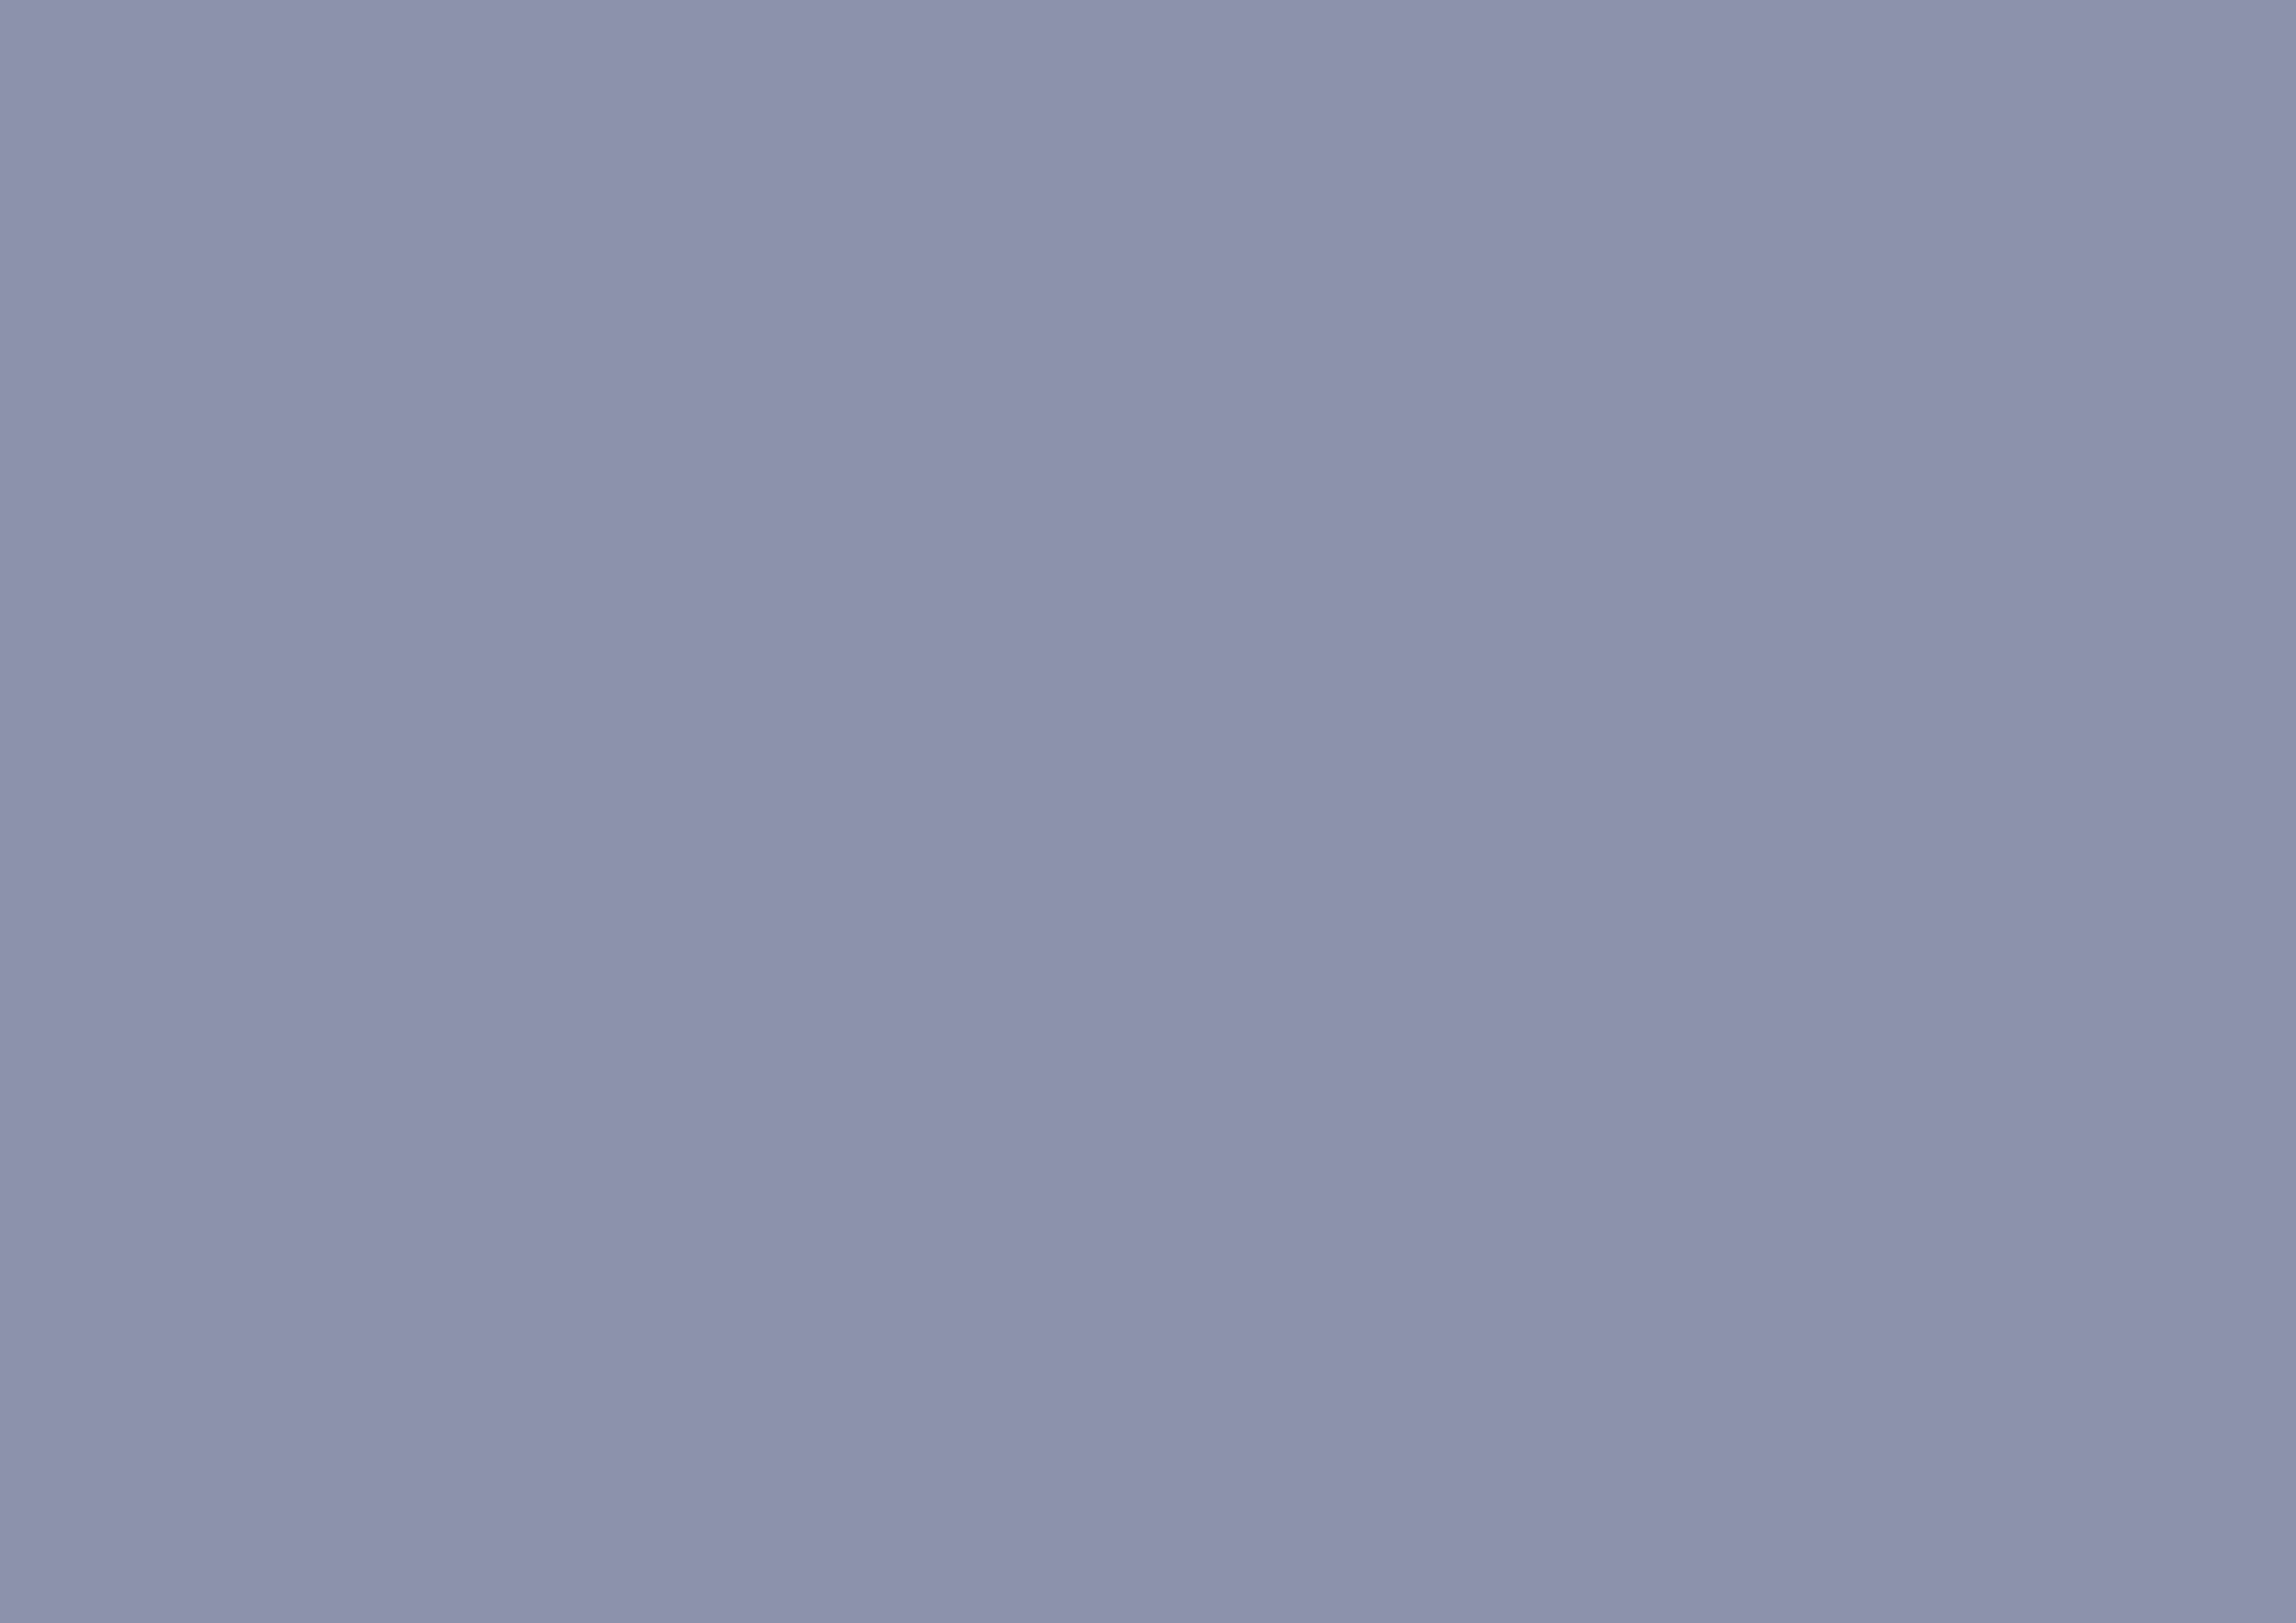 3508x2480 Gray-blue Solid Color Background